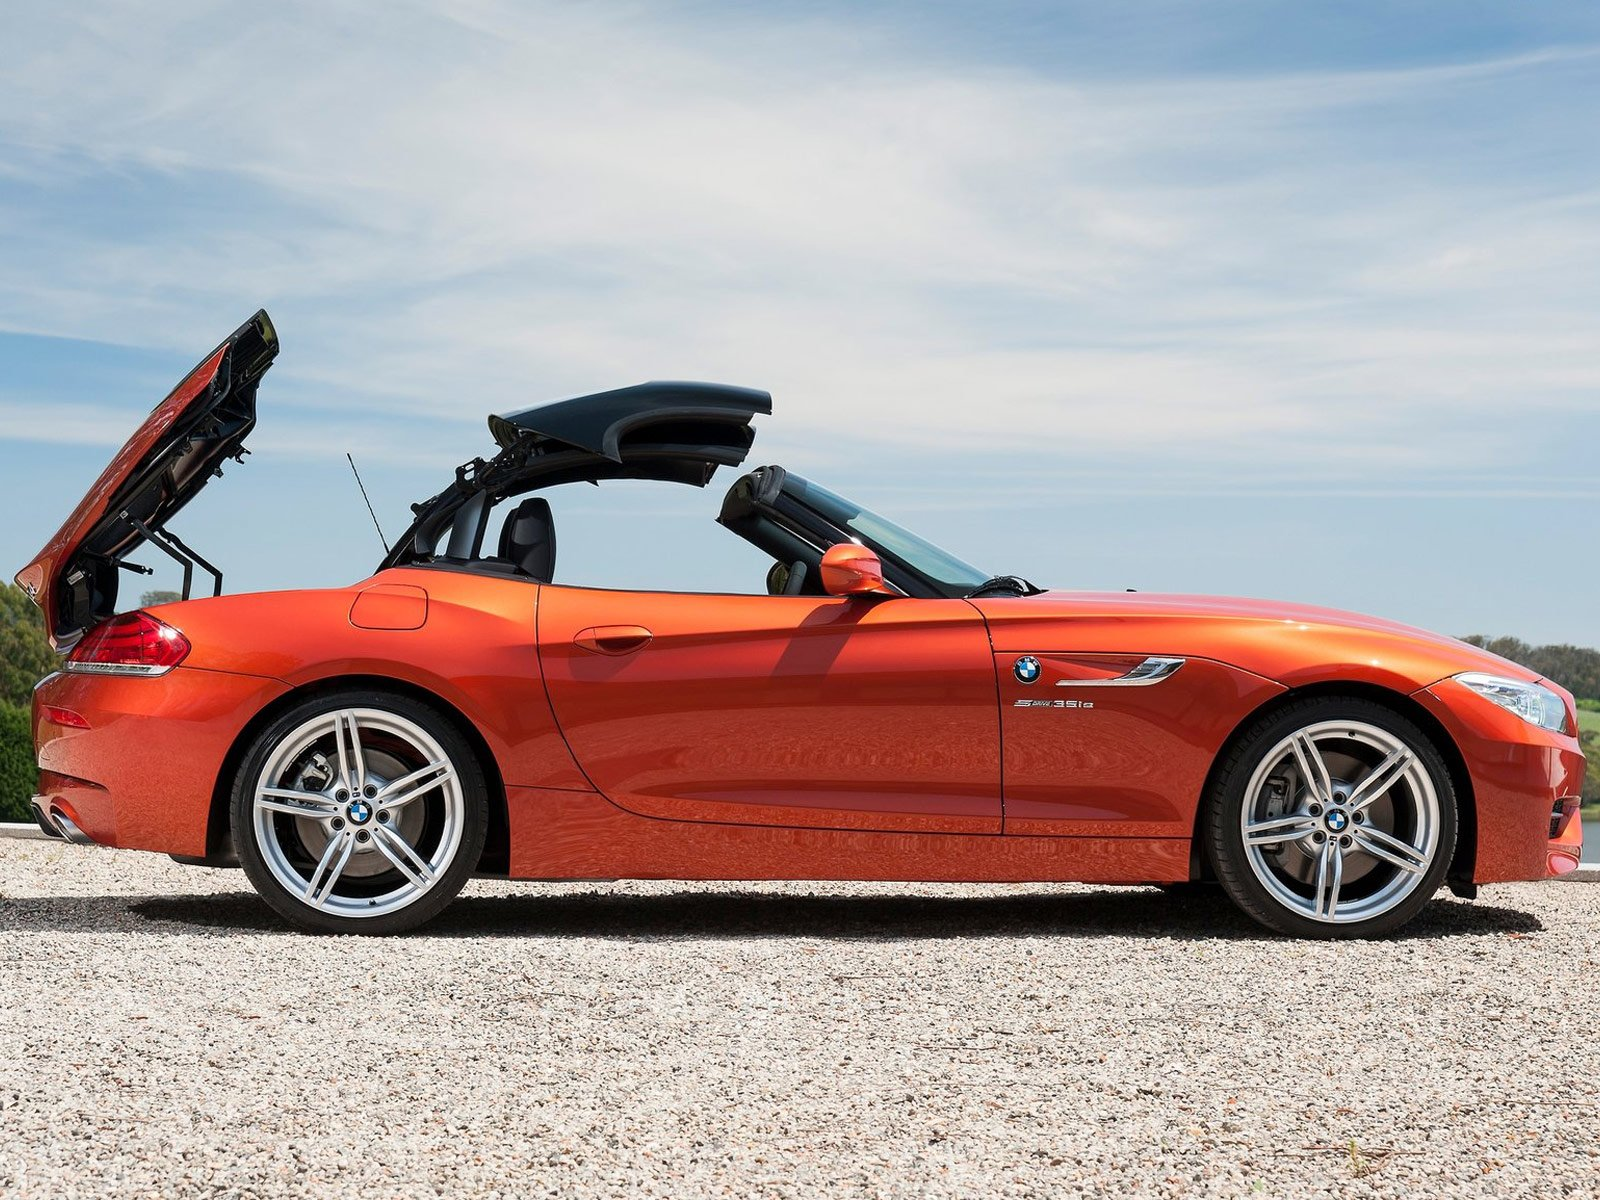 Latest 2014 Bmw Z4 Roadster Car Pictures Insurance Information Free Download Original 1024 x 768